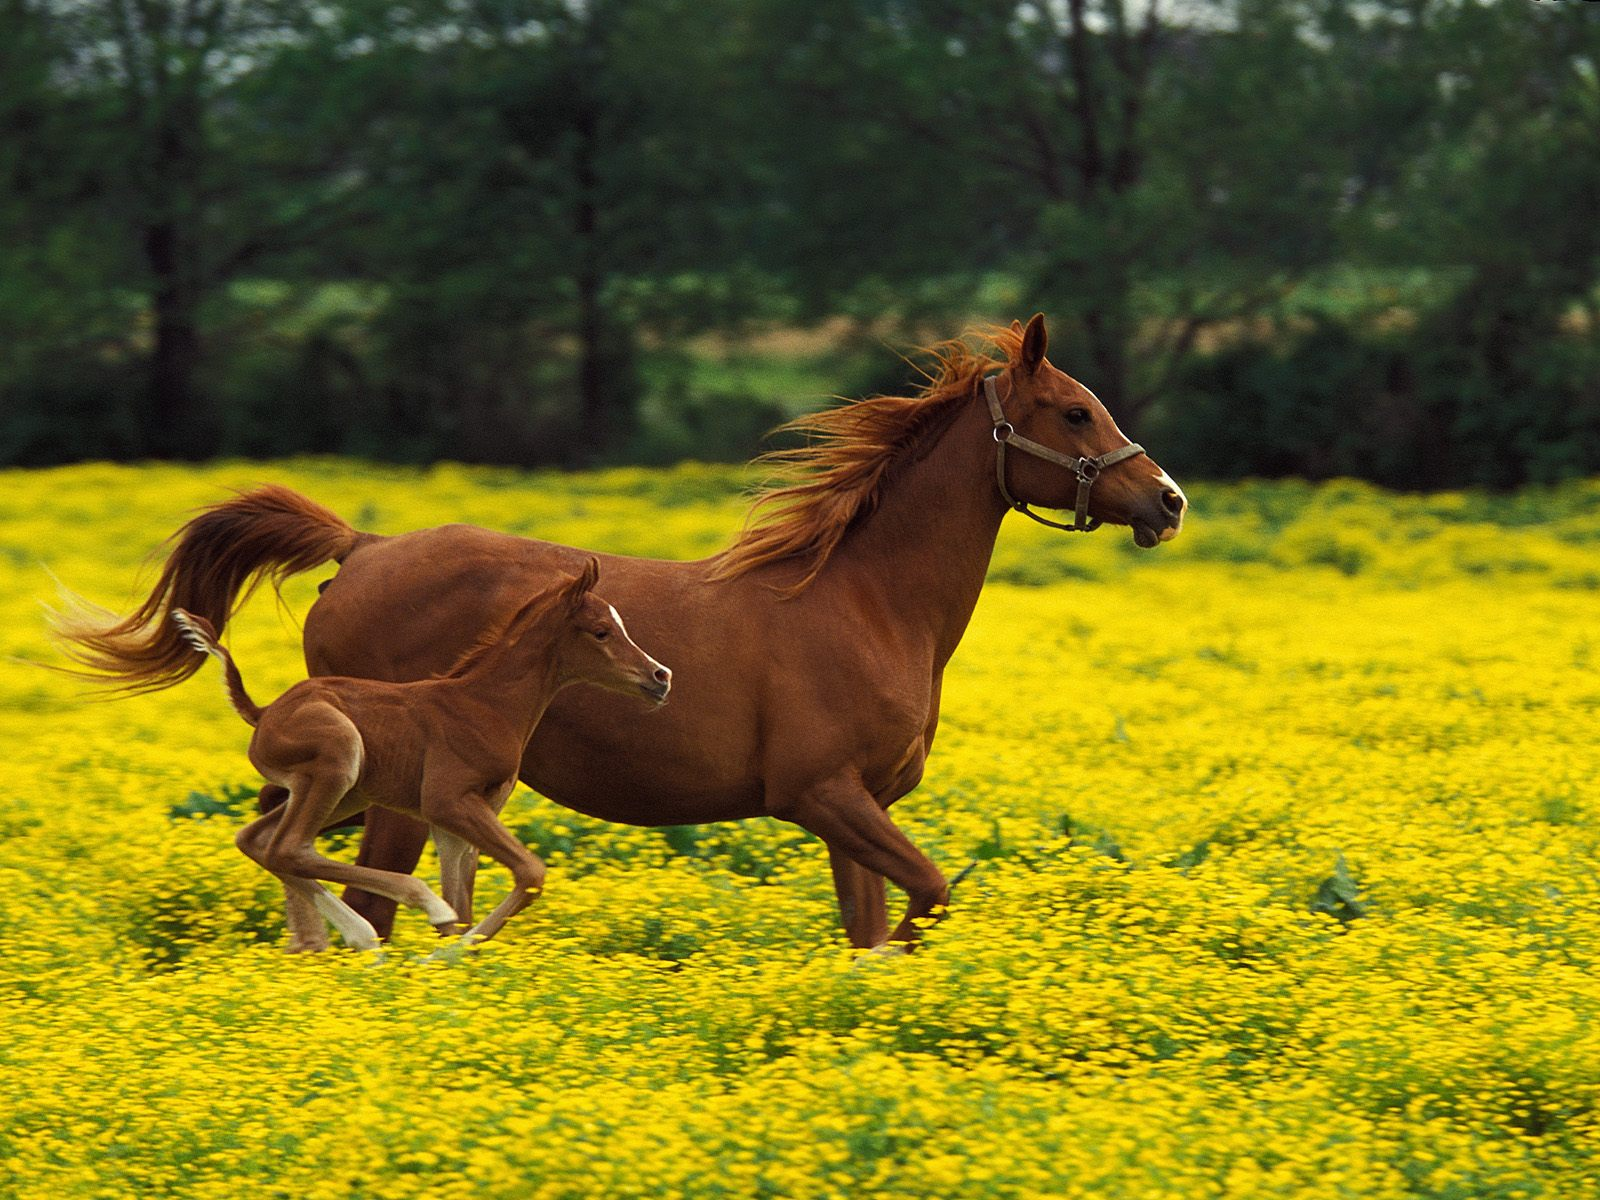 Cool   Wallpaper Horse High Quality - horse+wallpapers+hd+(15)  Photograph_312474.jpg